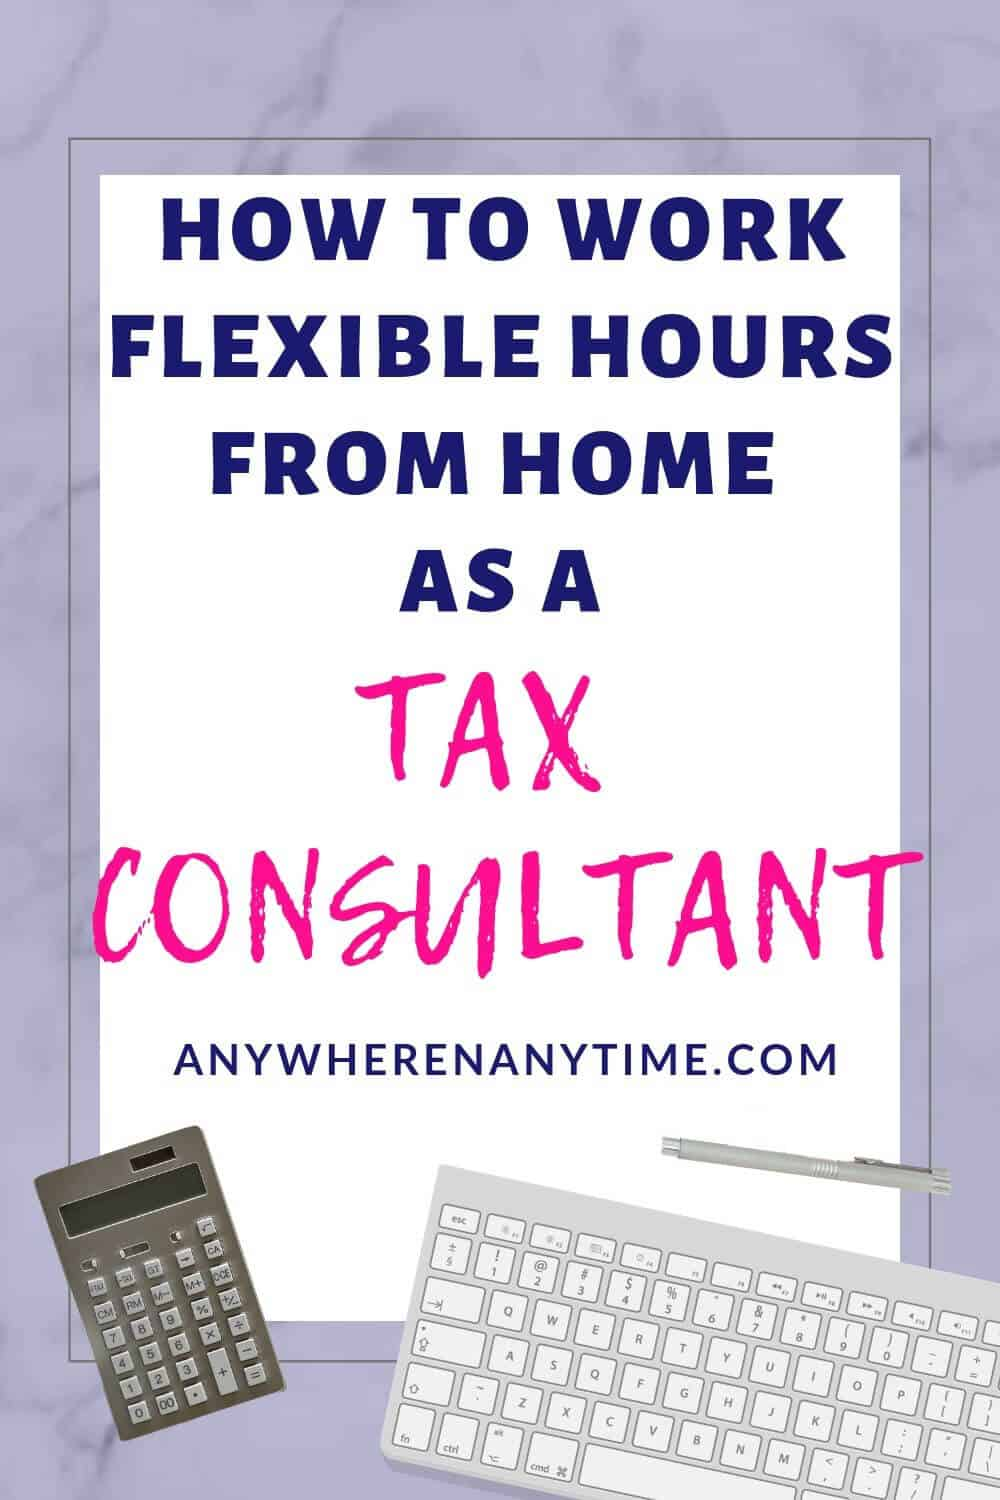 What if you could make money from home, part-time, by crunching numbers for small businesses? Read this interview to find out how starting a home tax-consulting business can change your life! #businessideas #taxconsulting